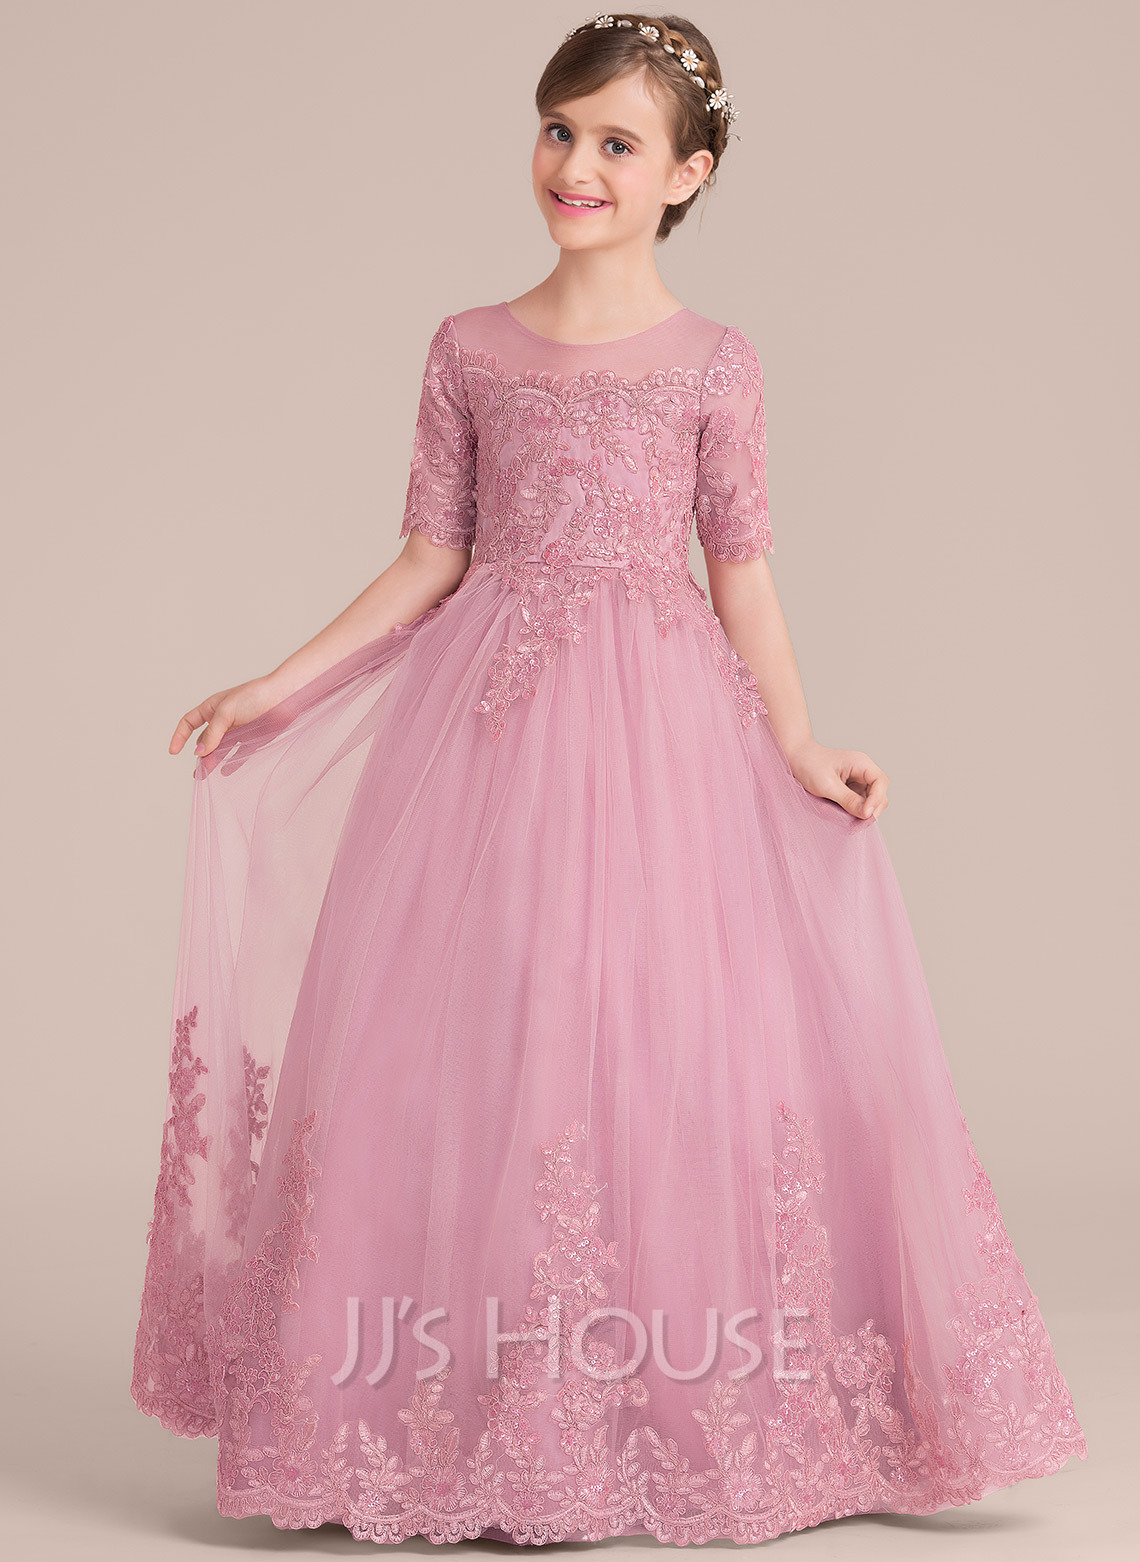 Affordable Flower Girl Dresses Jjs House